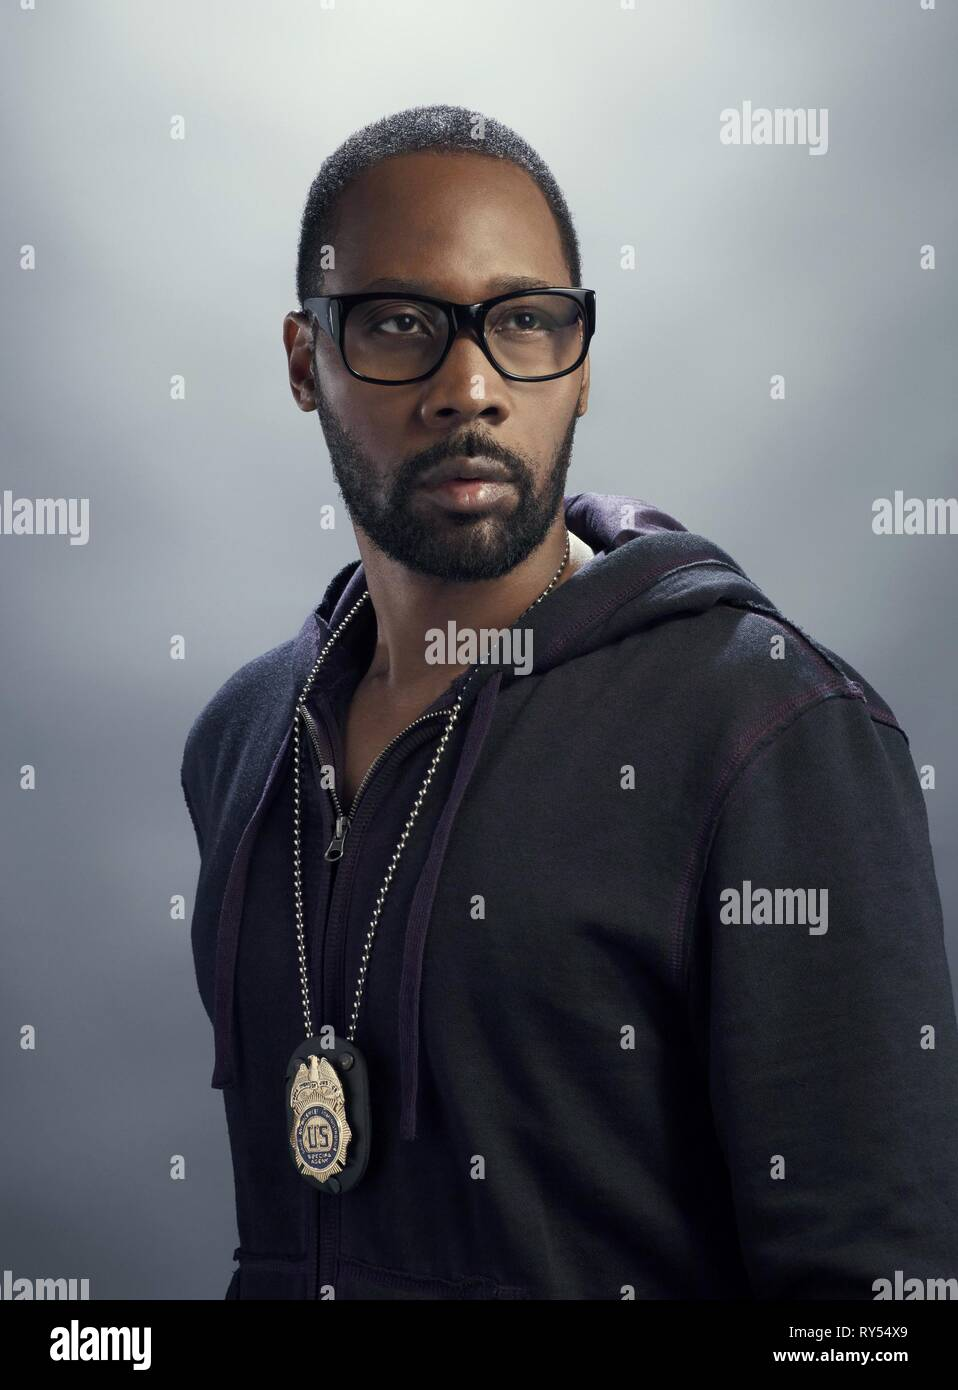 RZA, GANG RELATED, 2014 - Stock Image